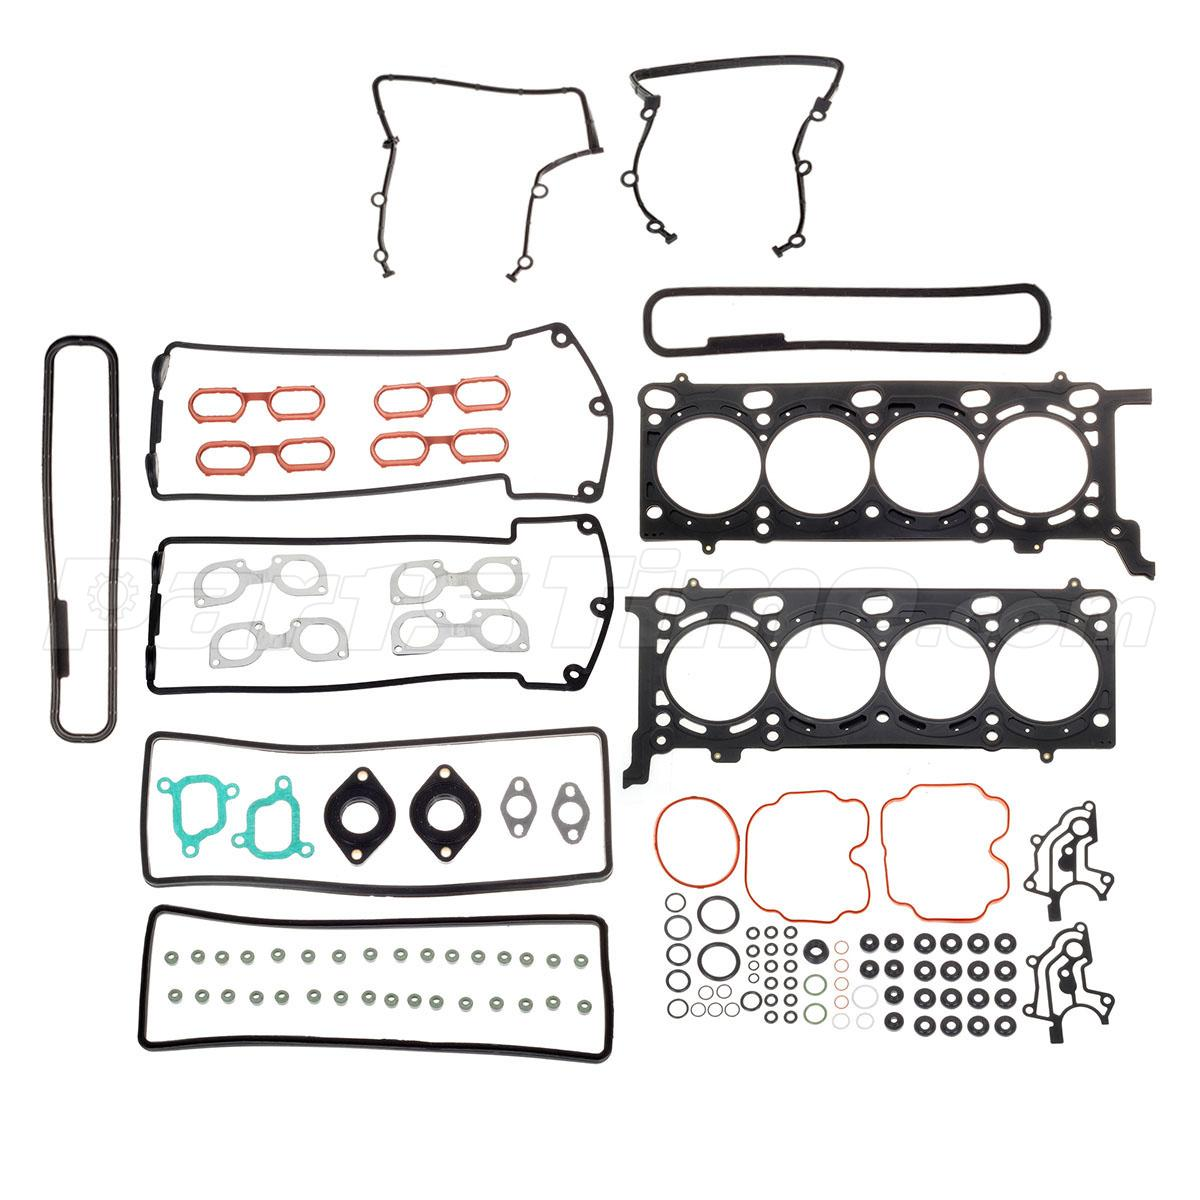 2012 Bmw X5 M Head Gasket: Head Gasket Set For 2001-2003 BMW X5 4.4i 11120004553